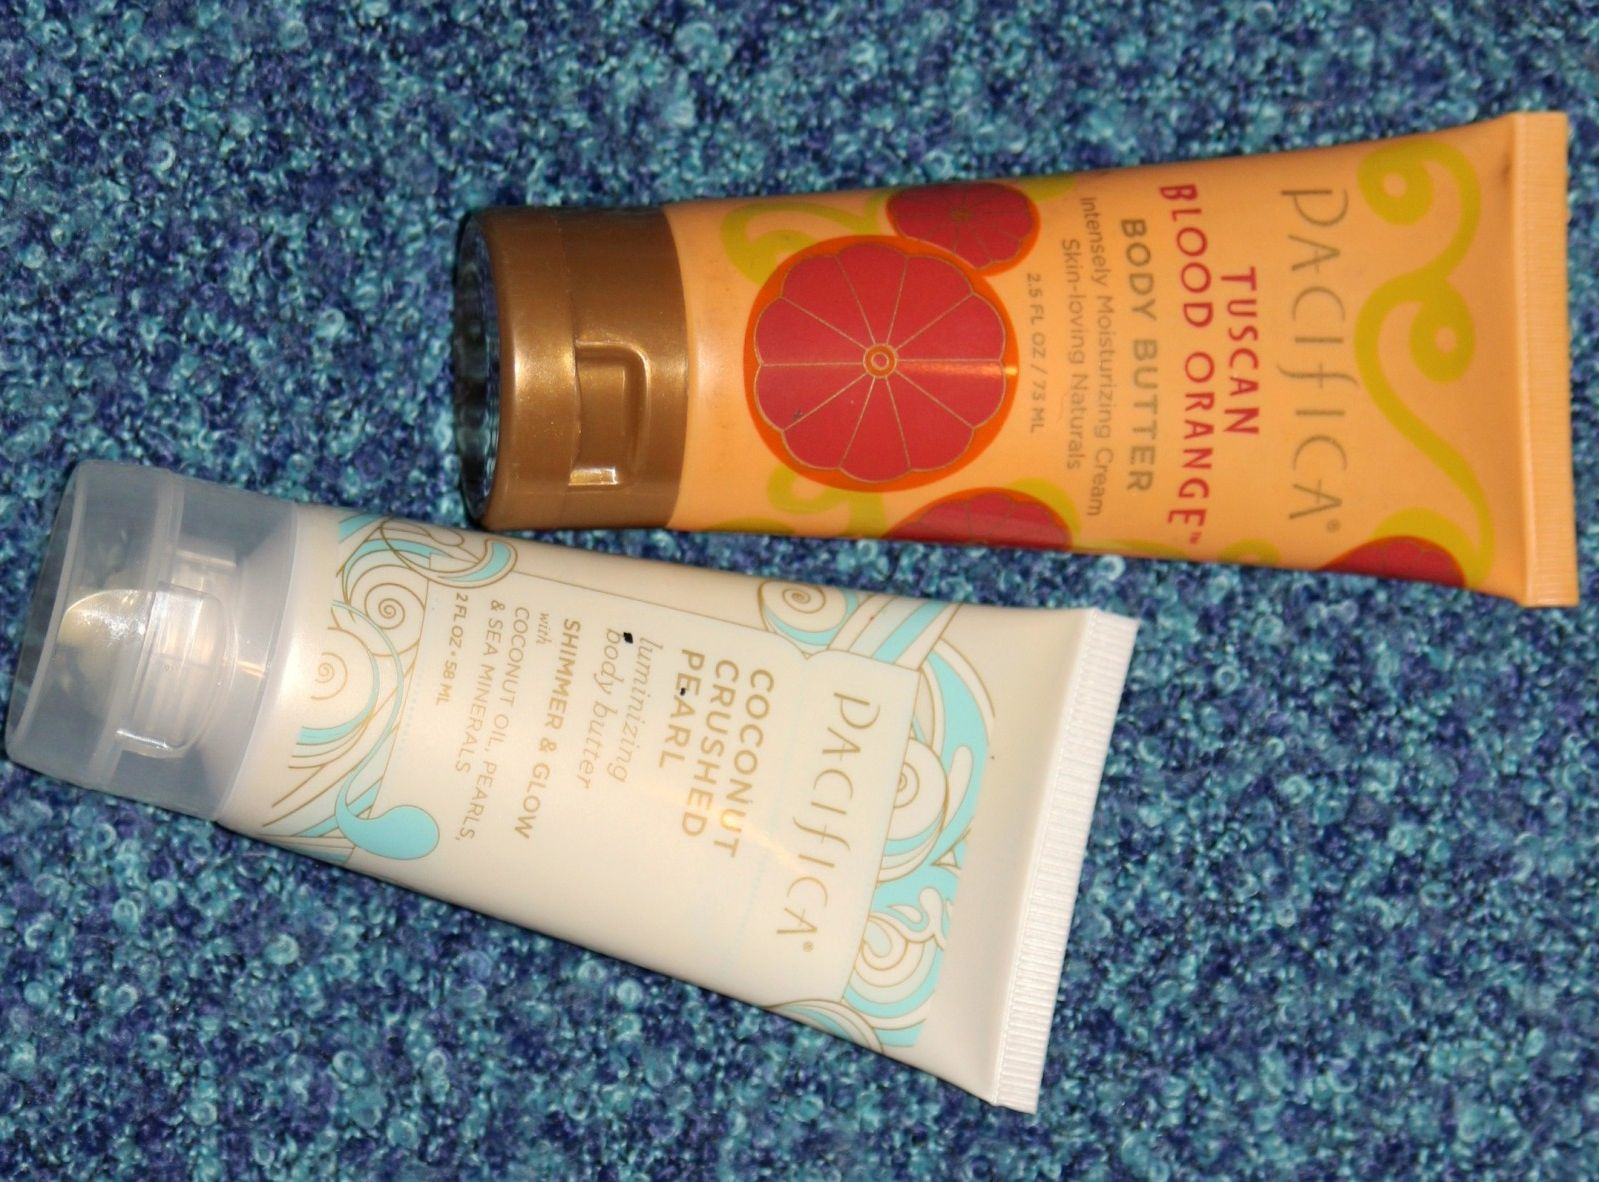 Lost and Loving Life Review Pacifica Body Butter